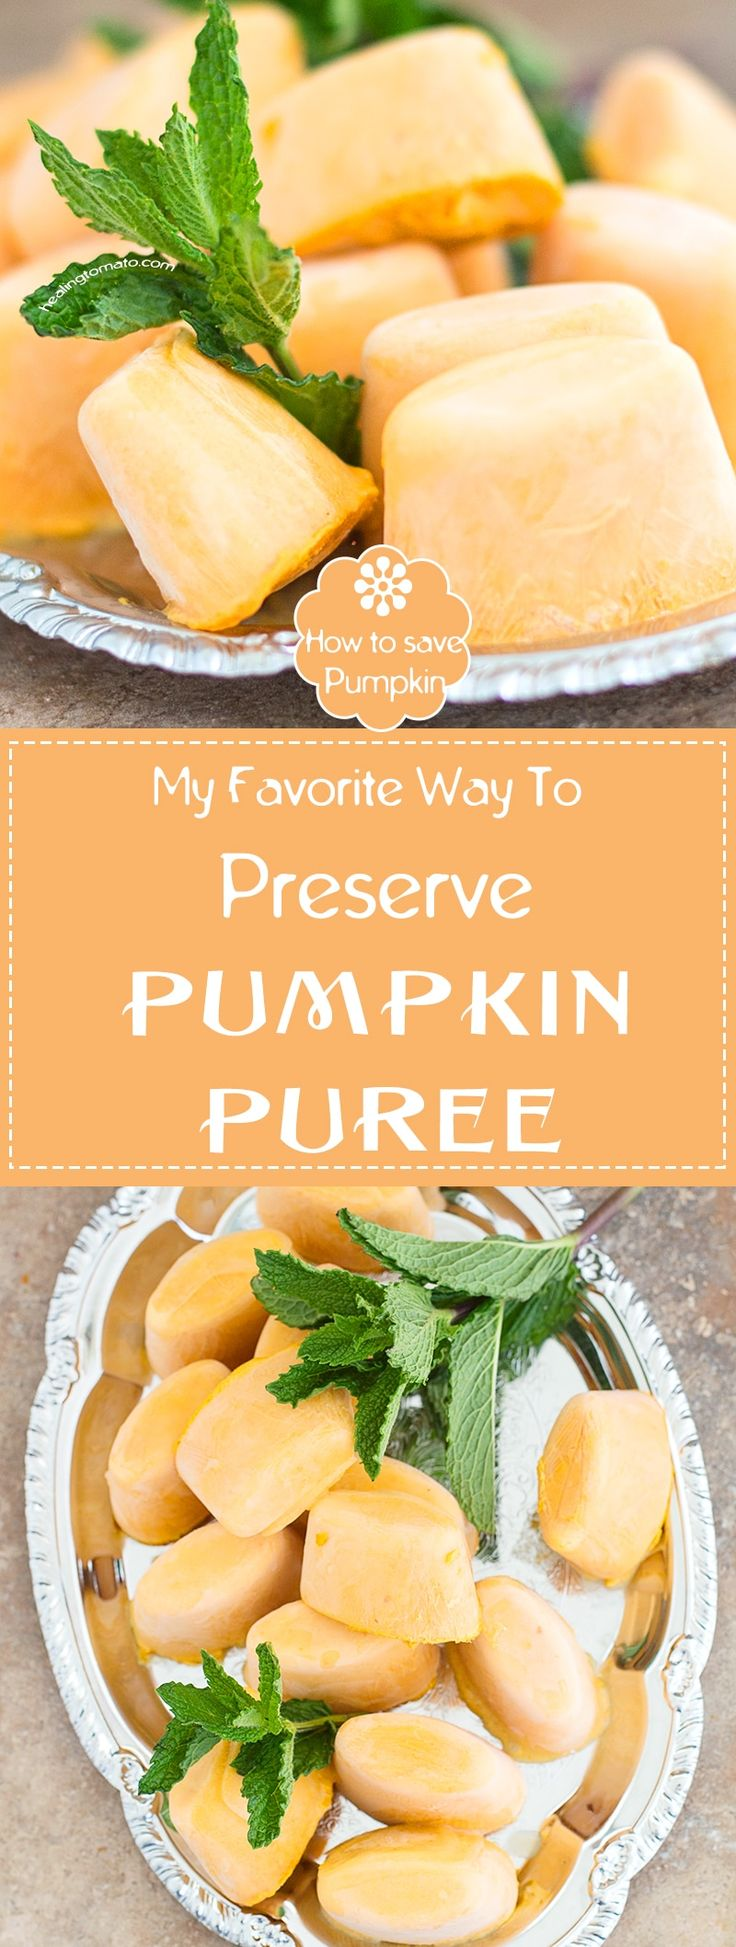 What do you do With all the Extra Pumpkin Puree that you Don't Use? Whether its Puree From a Can or Puree From Fresh Pumpkins, You Can Preserve it Using Five Very Easy Steps | DIY, How to ideas, How to preserve recipes, pumpkin recipes